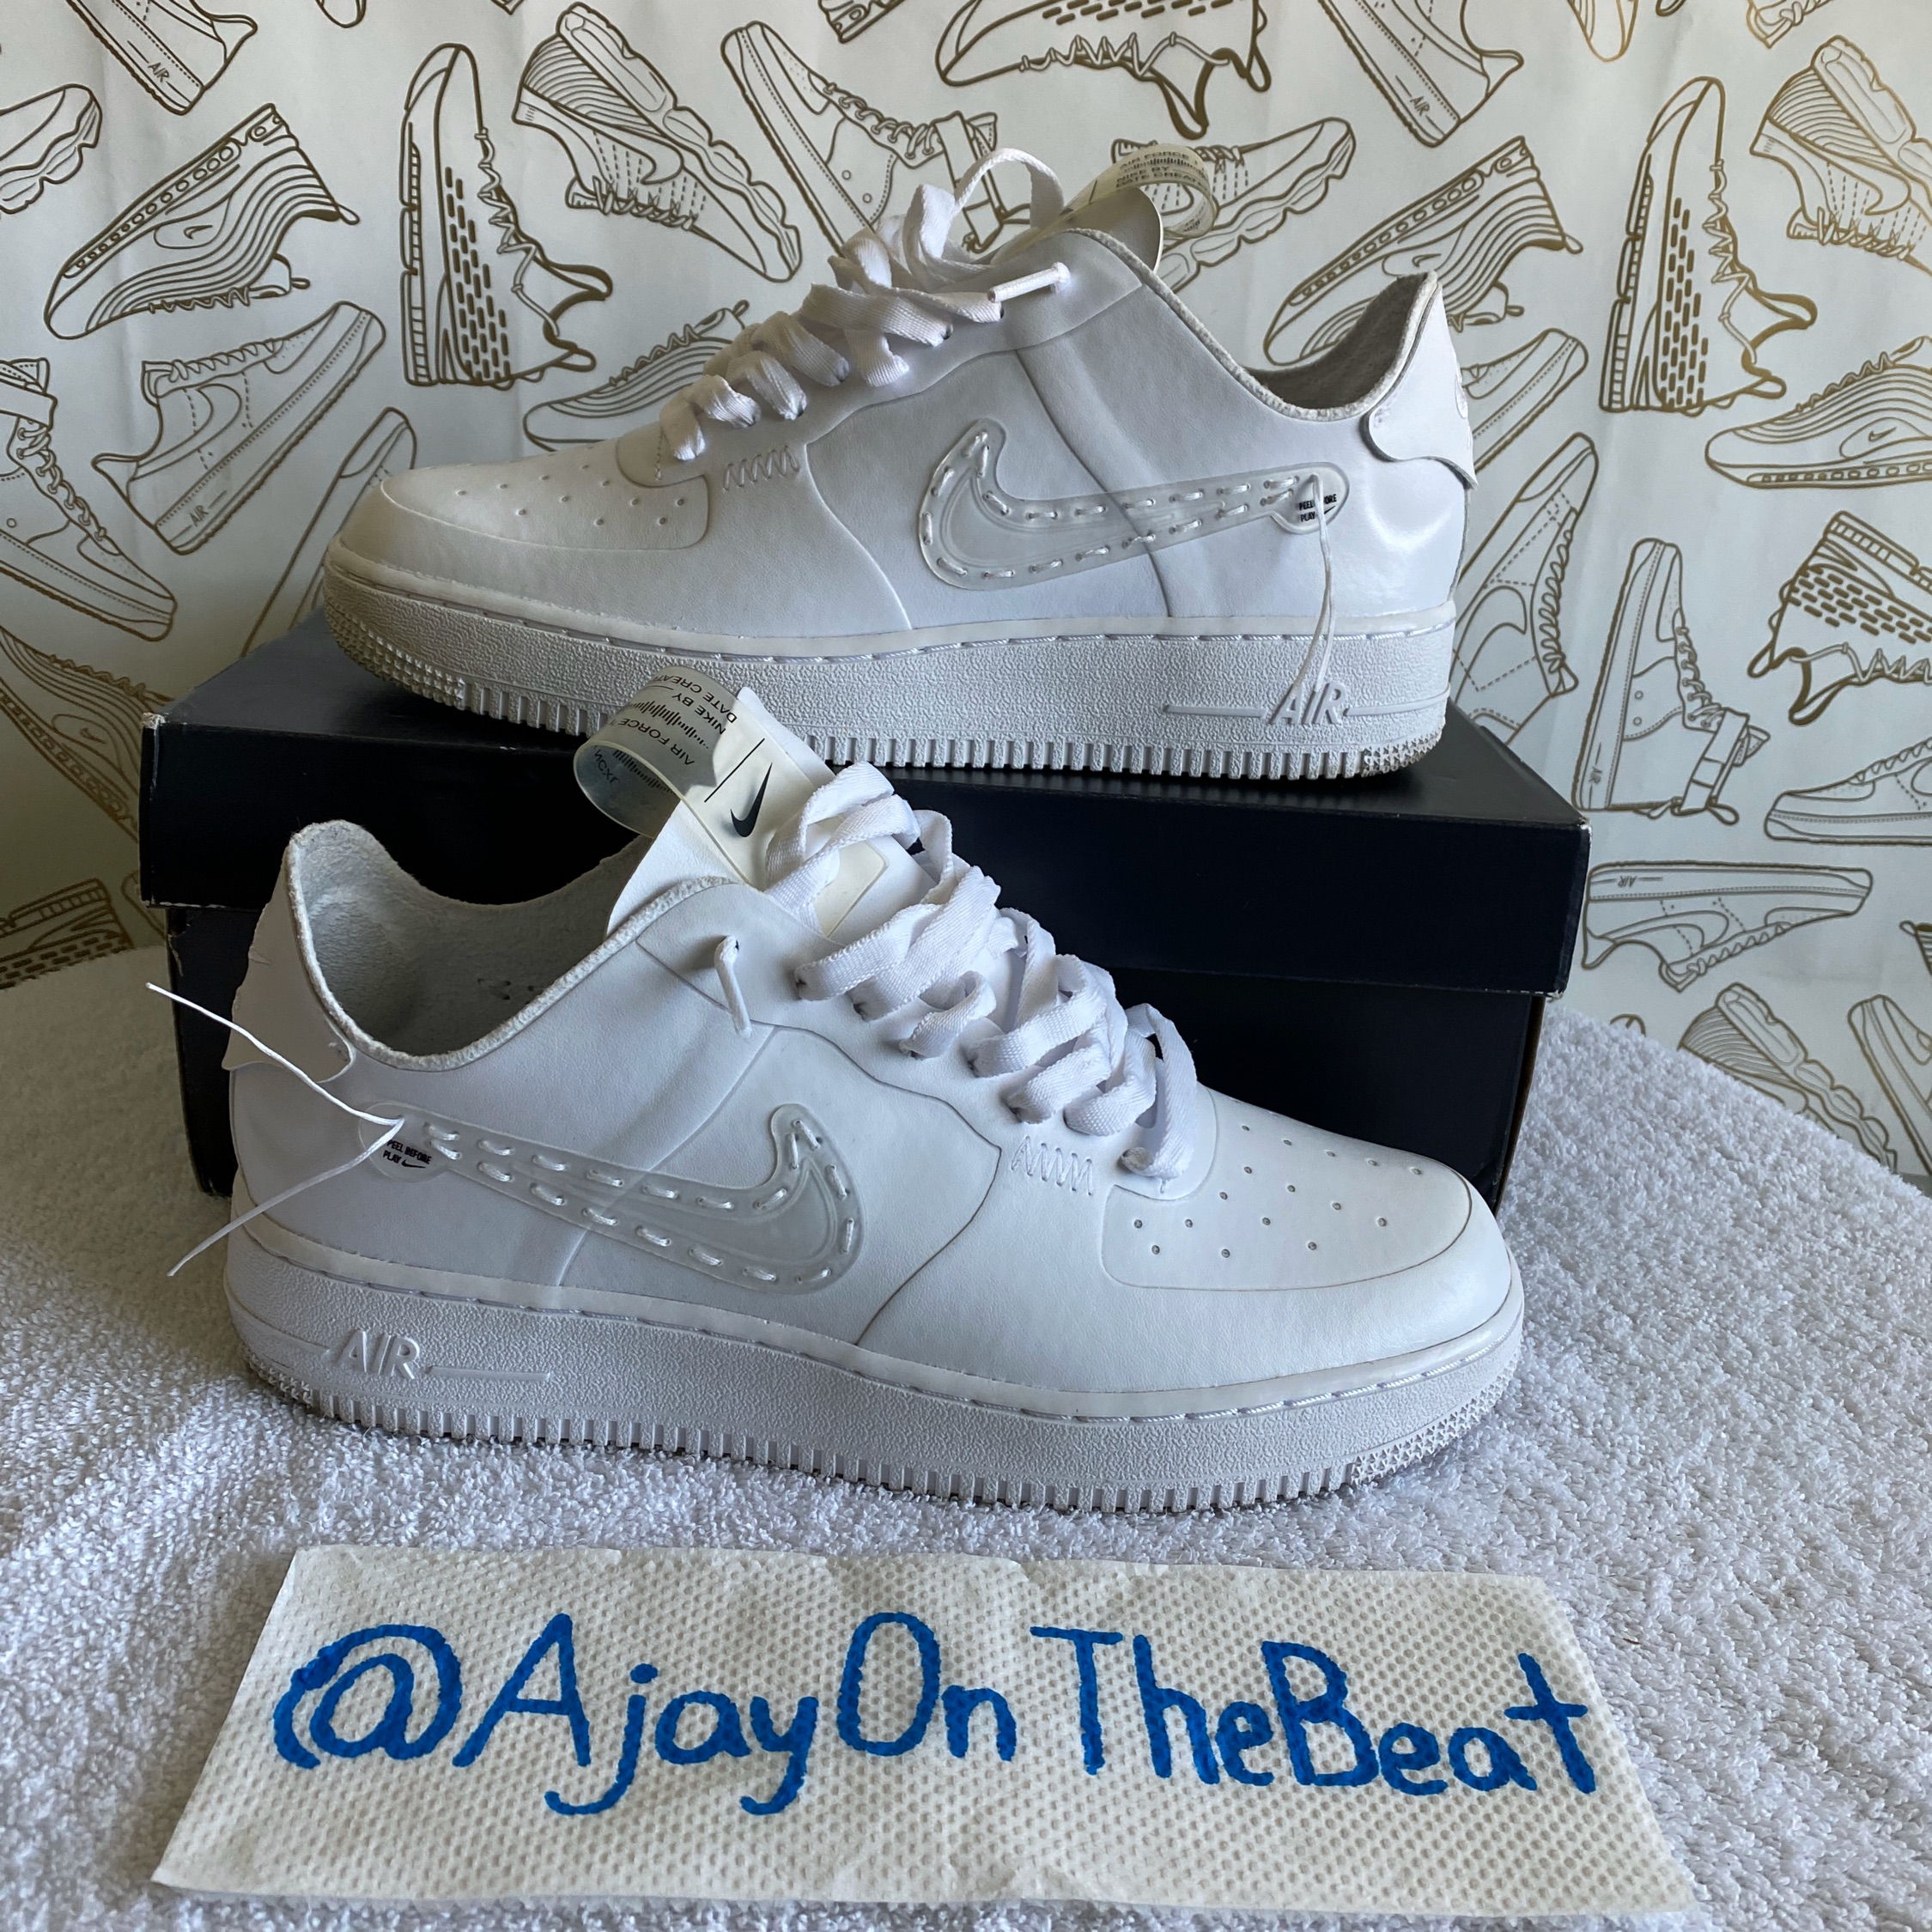 nike noise cancelling air force 1